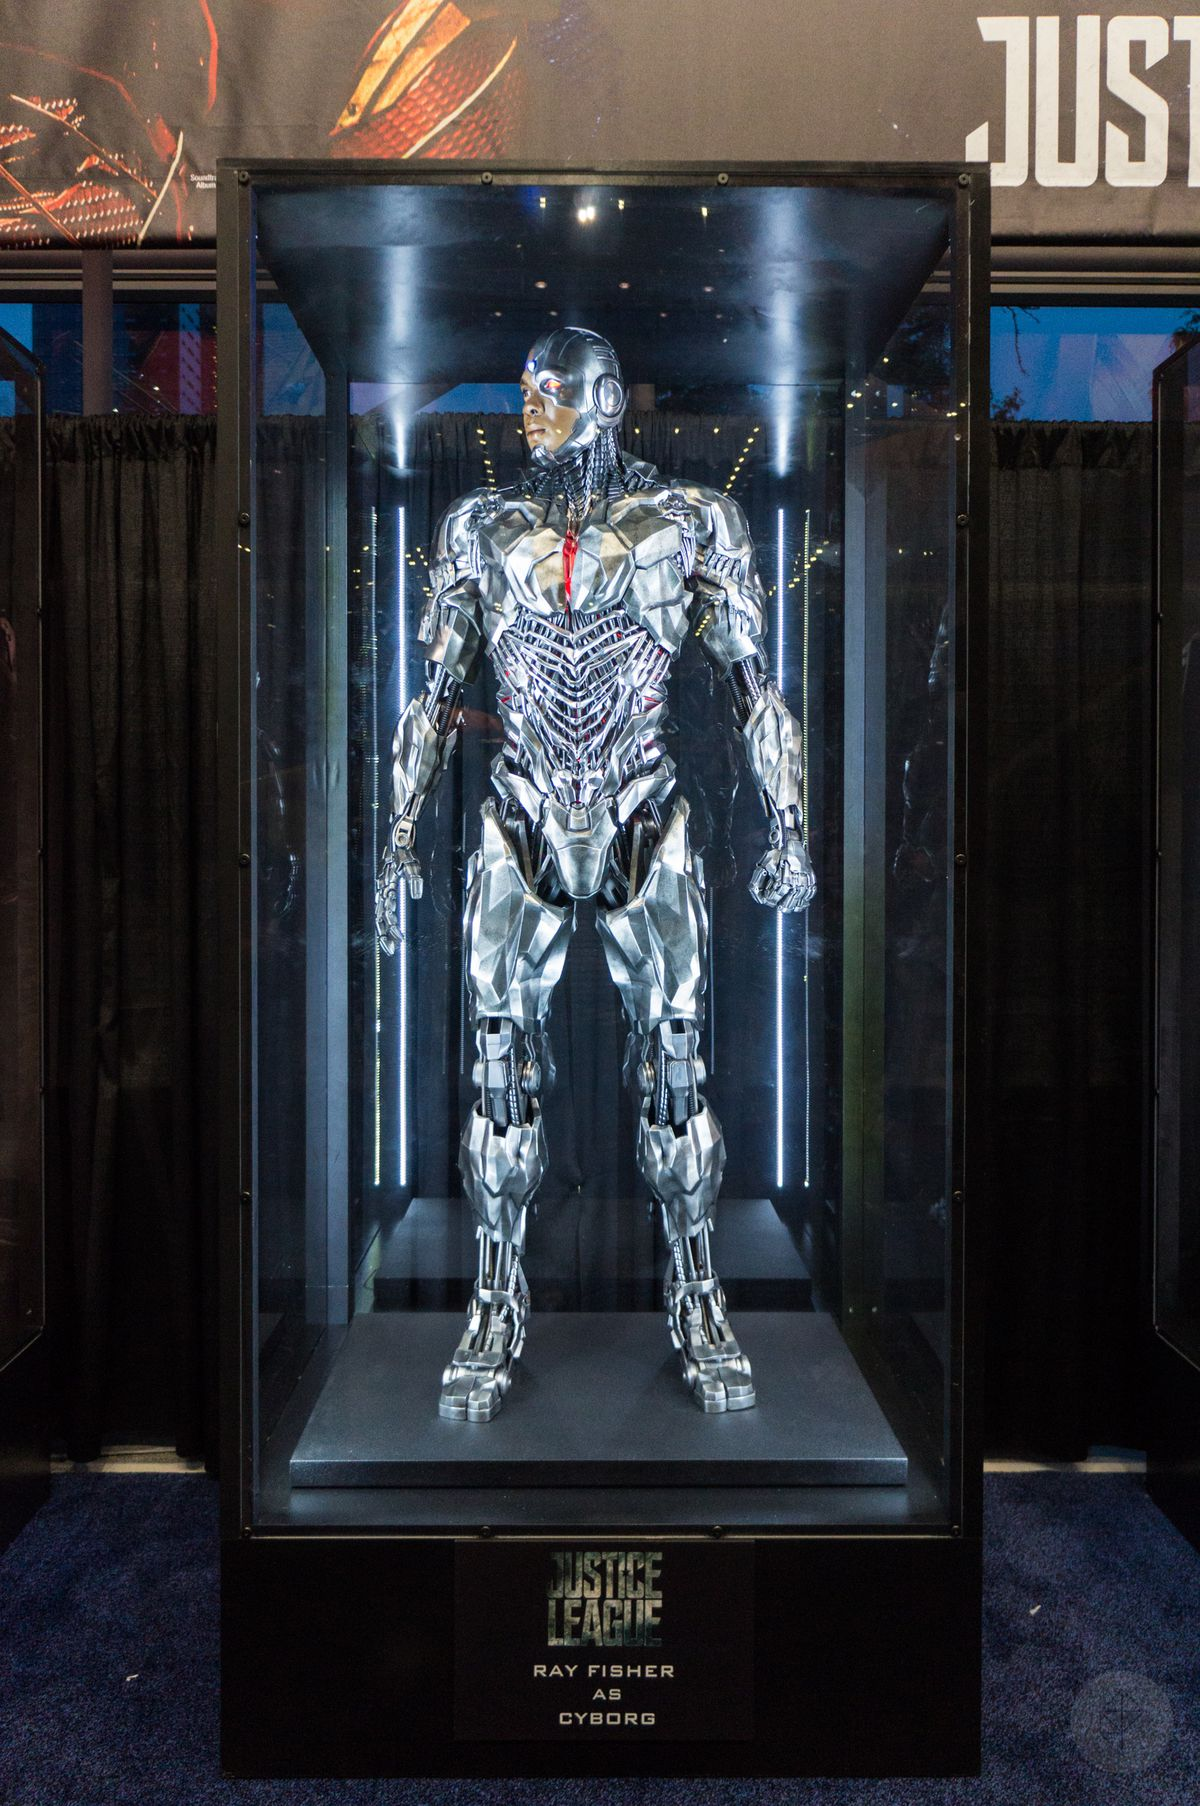 Cyborg costume from Justice League movie in glass case at NYCC 2017